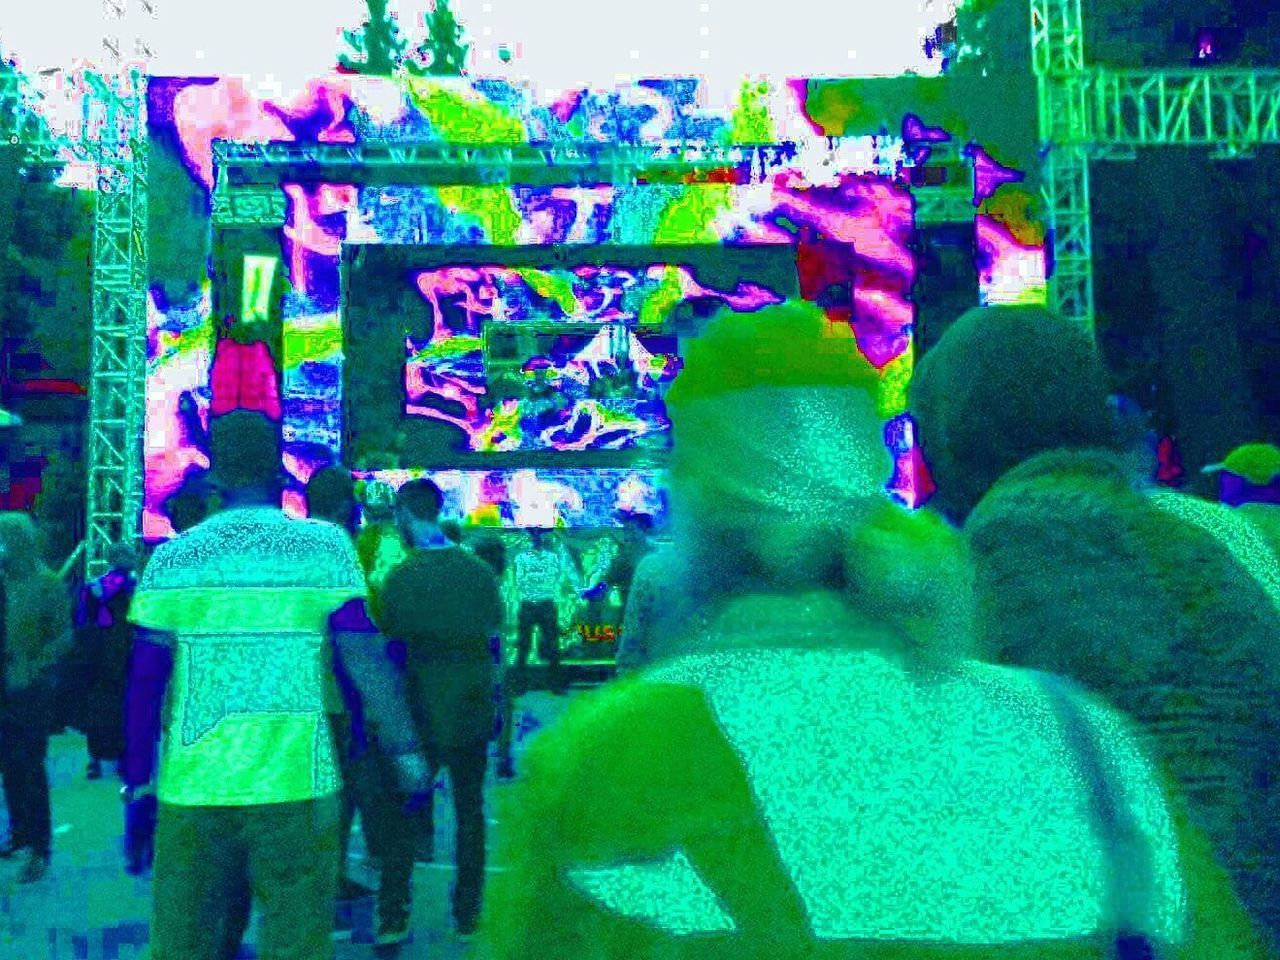 My Favorite Place Enjoy The New Normal Dancing Nature Electronic Music Shots Festival Festival Season Colors Young Adult Spontaneous Moments Close Up Technology